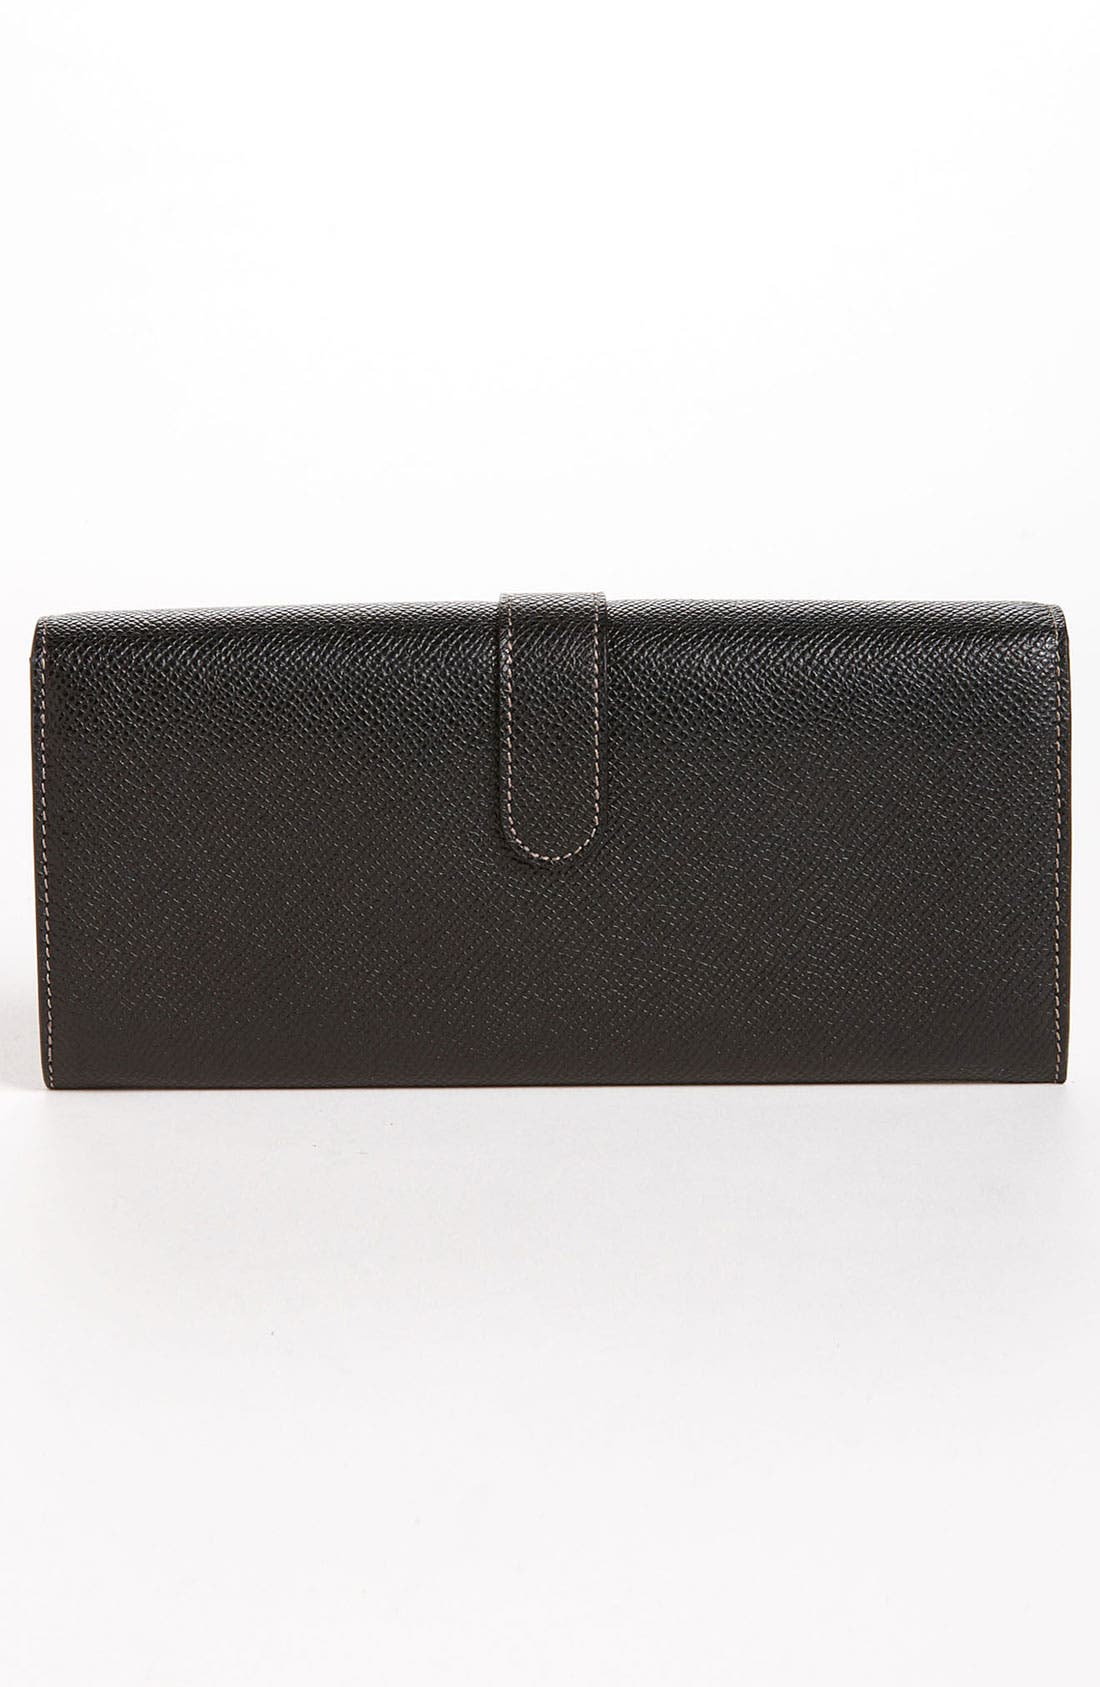 Alternate Image 3  - Tod's 'Mini Rounded' Wallet